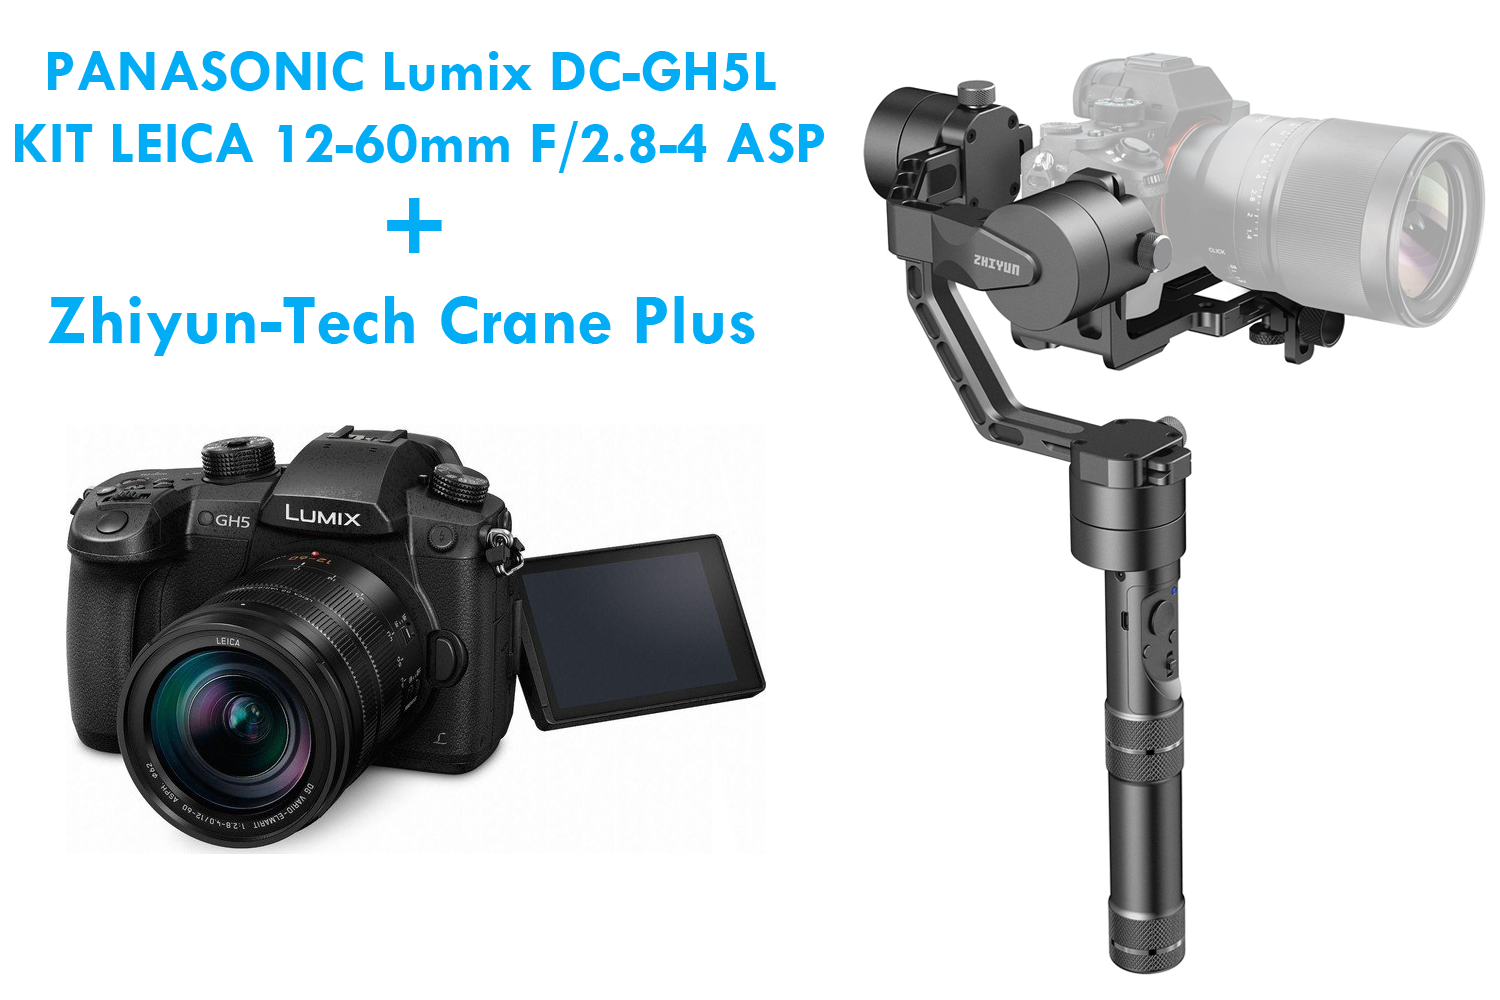 PANASONIC DC-GH5L KIT LEICA12-60MM + ZHIYUN-TECH CRANE PLUS